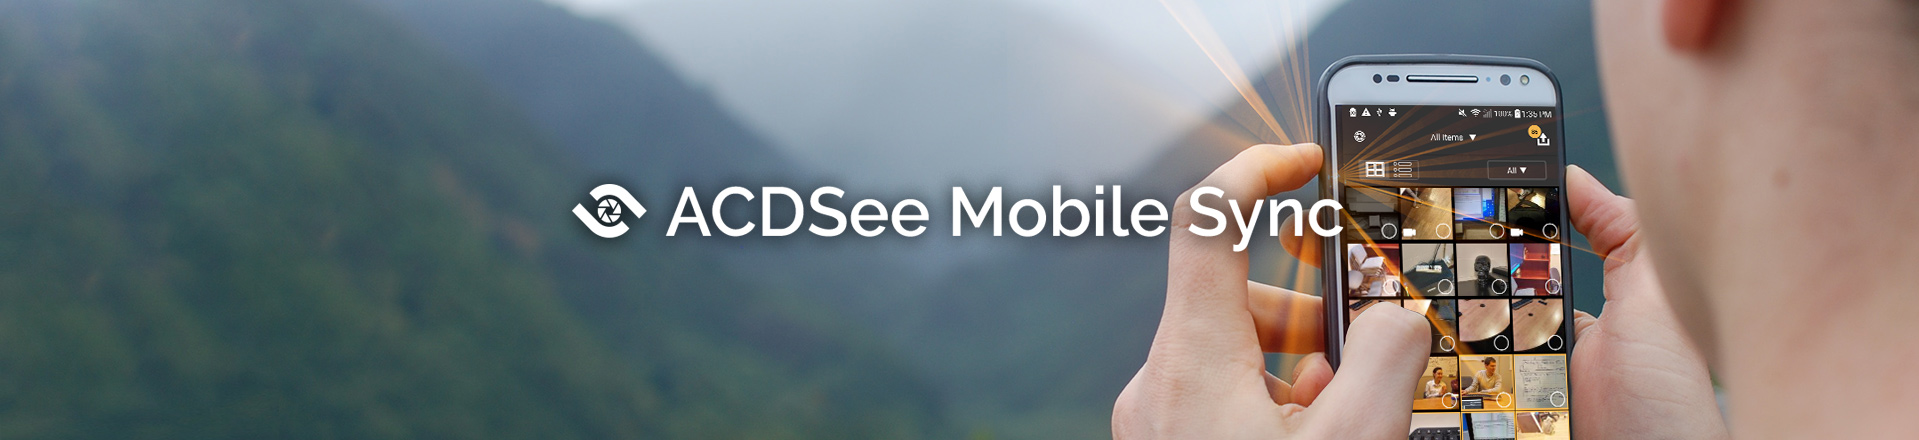 ACDSee banner